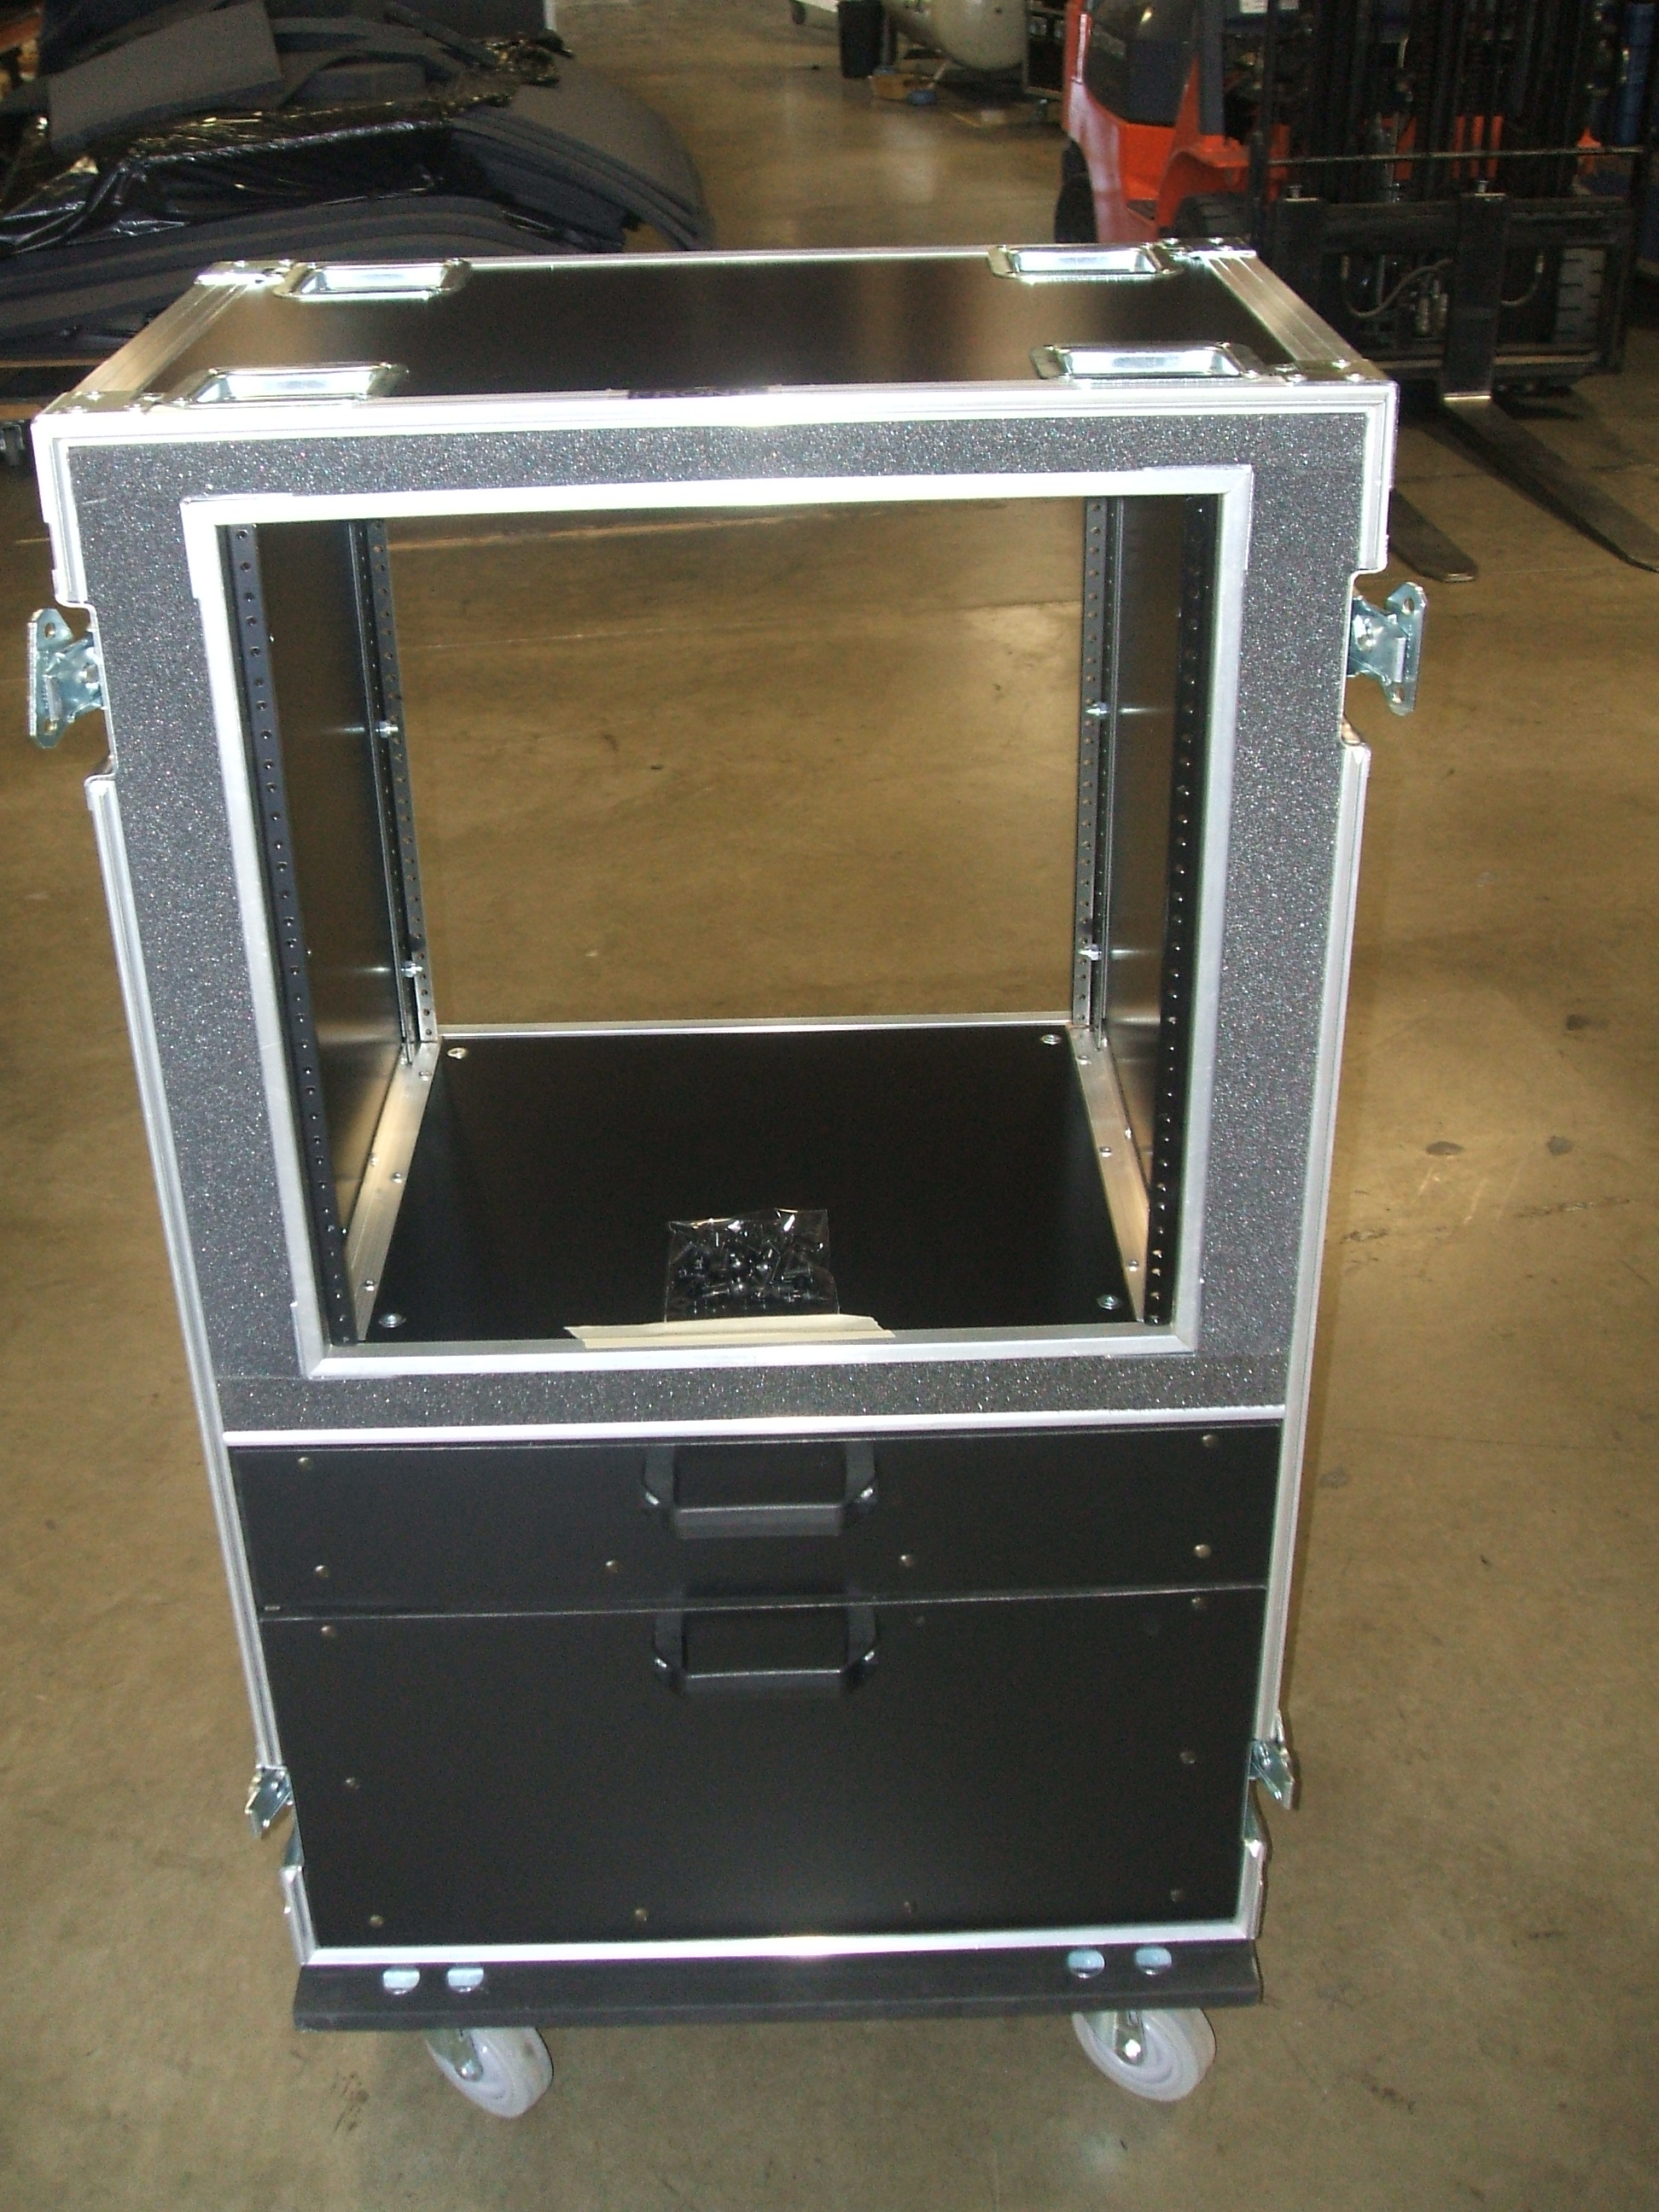 Print # 5902 - Custom 11-RU Rack for Shure UR124D Receiver Kits  By Nelson Case Corp